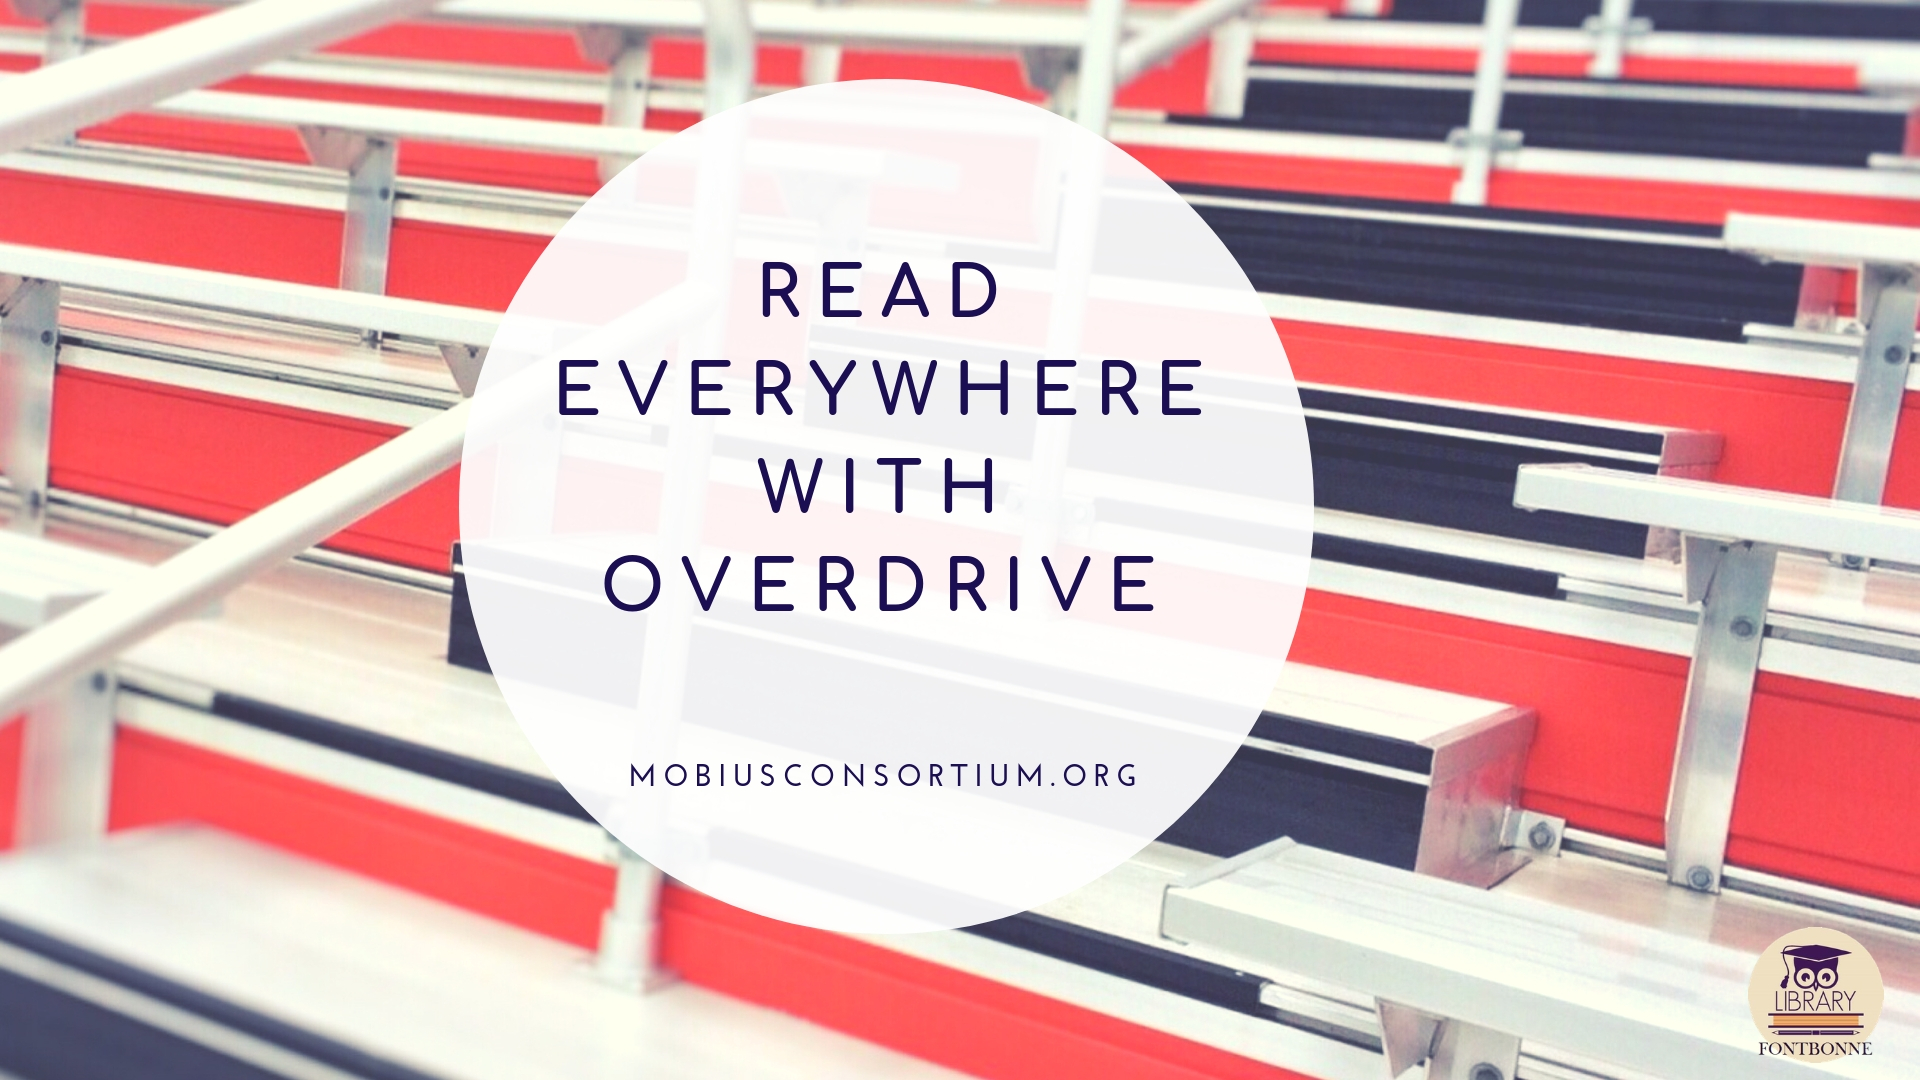 Find ebooks and audiobooks with Overdrive